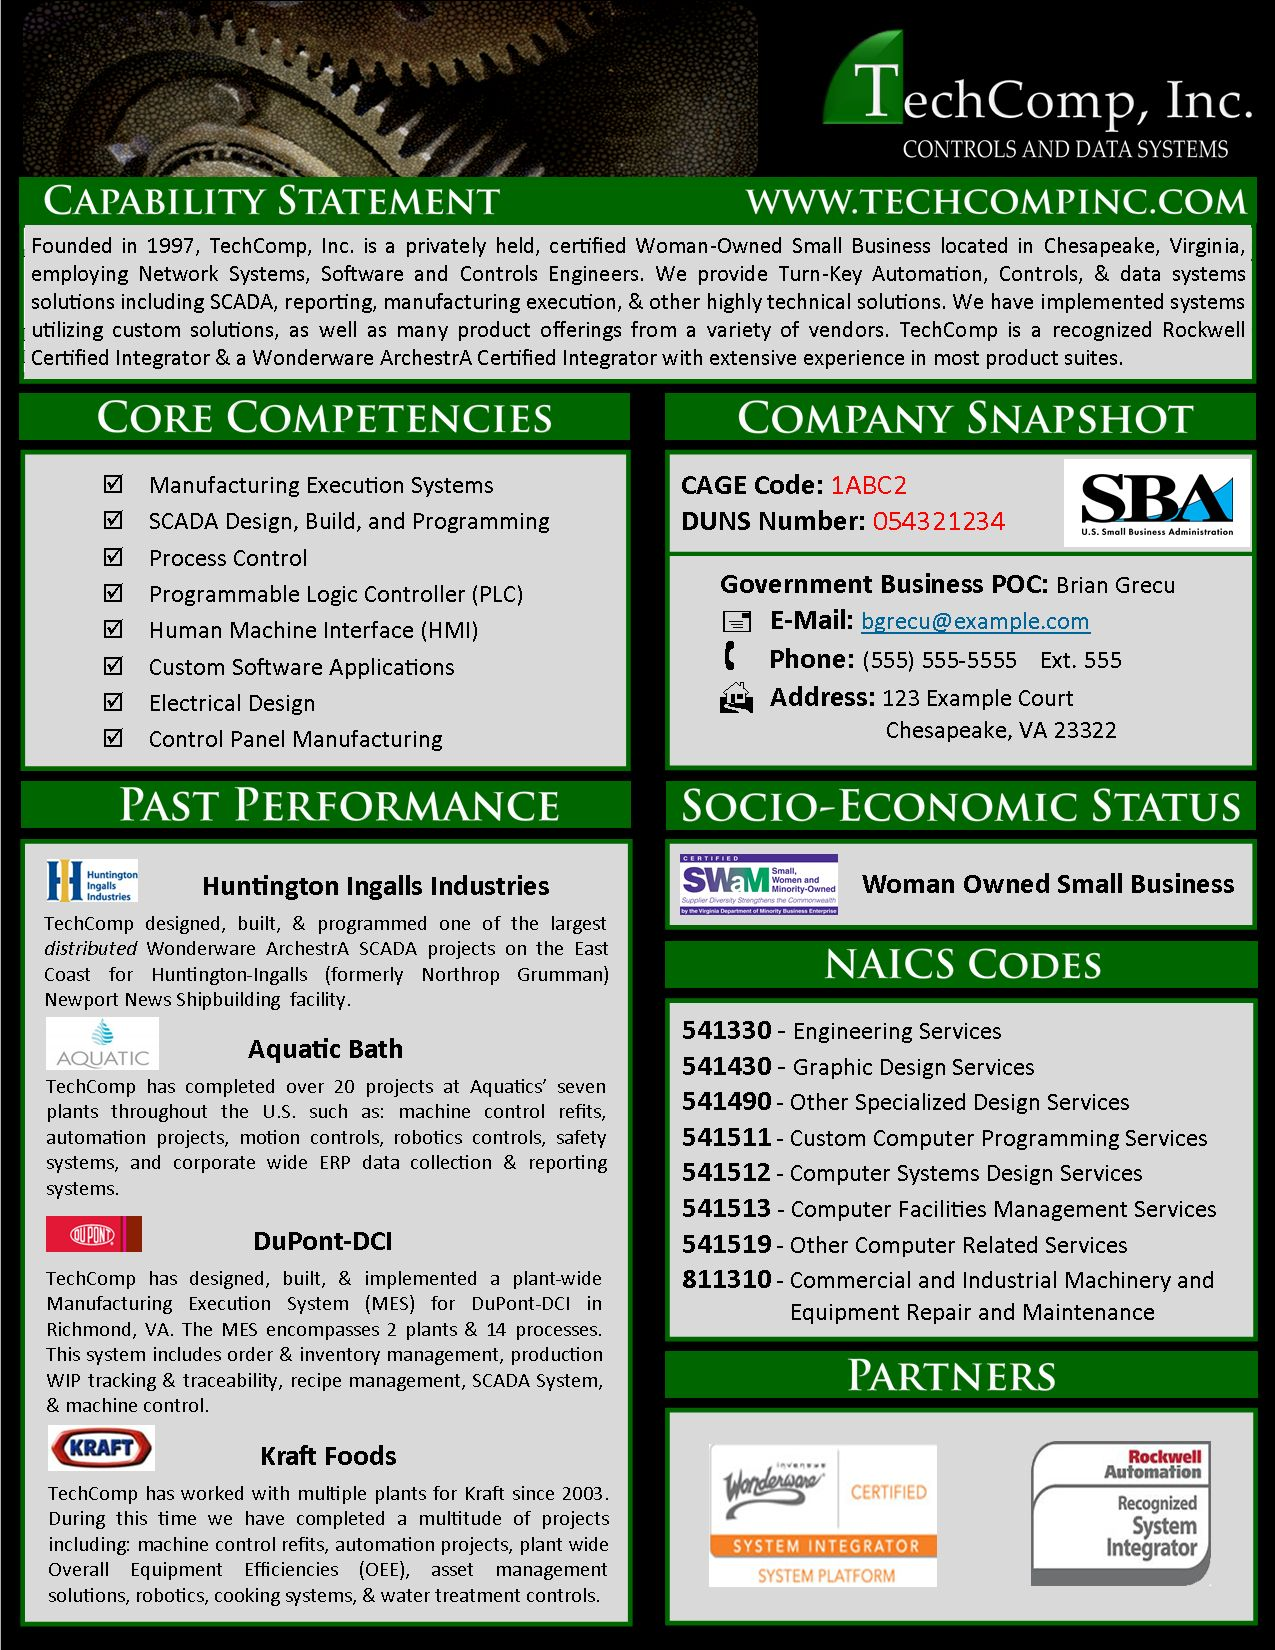 The Mesmerizing Capability Statement Examples Google Search Sample With Capability Statement Template Word Digit Statement Template Word Template Statement